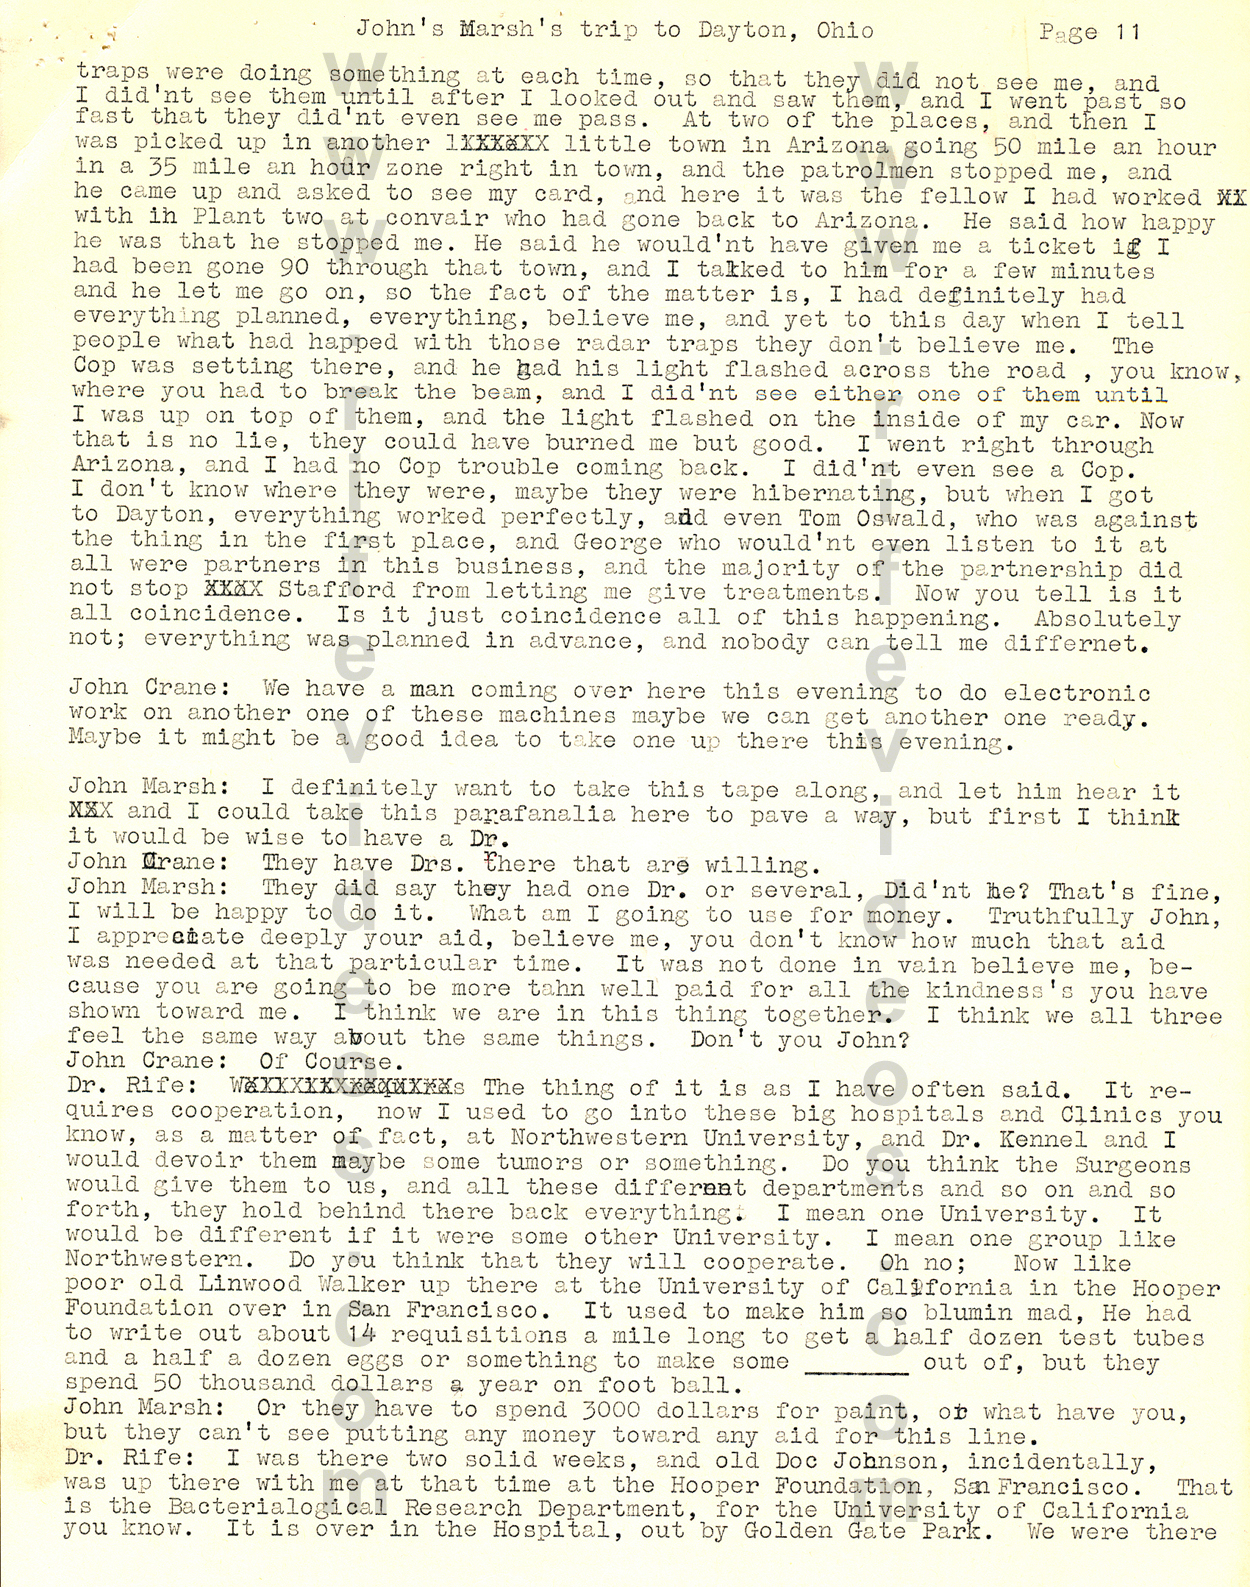 1957 John Marsh Trip To Dayton, Ohio P11 John Marsh Letters And Documents  About Dr Howto: